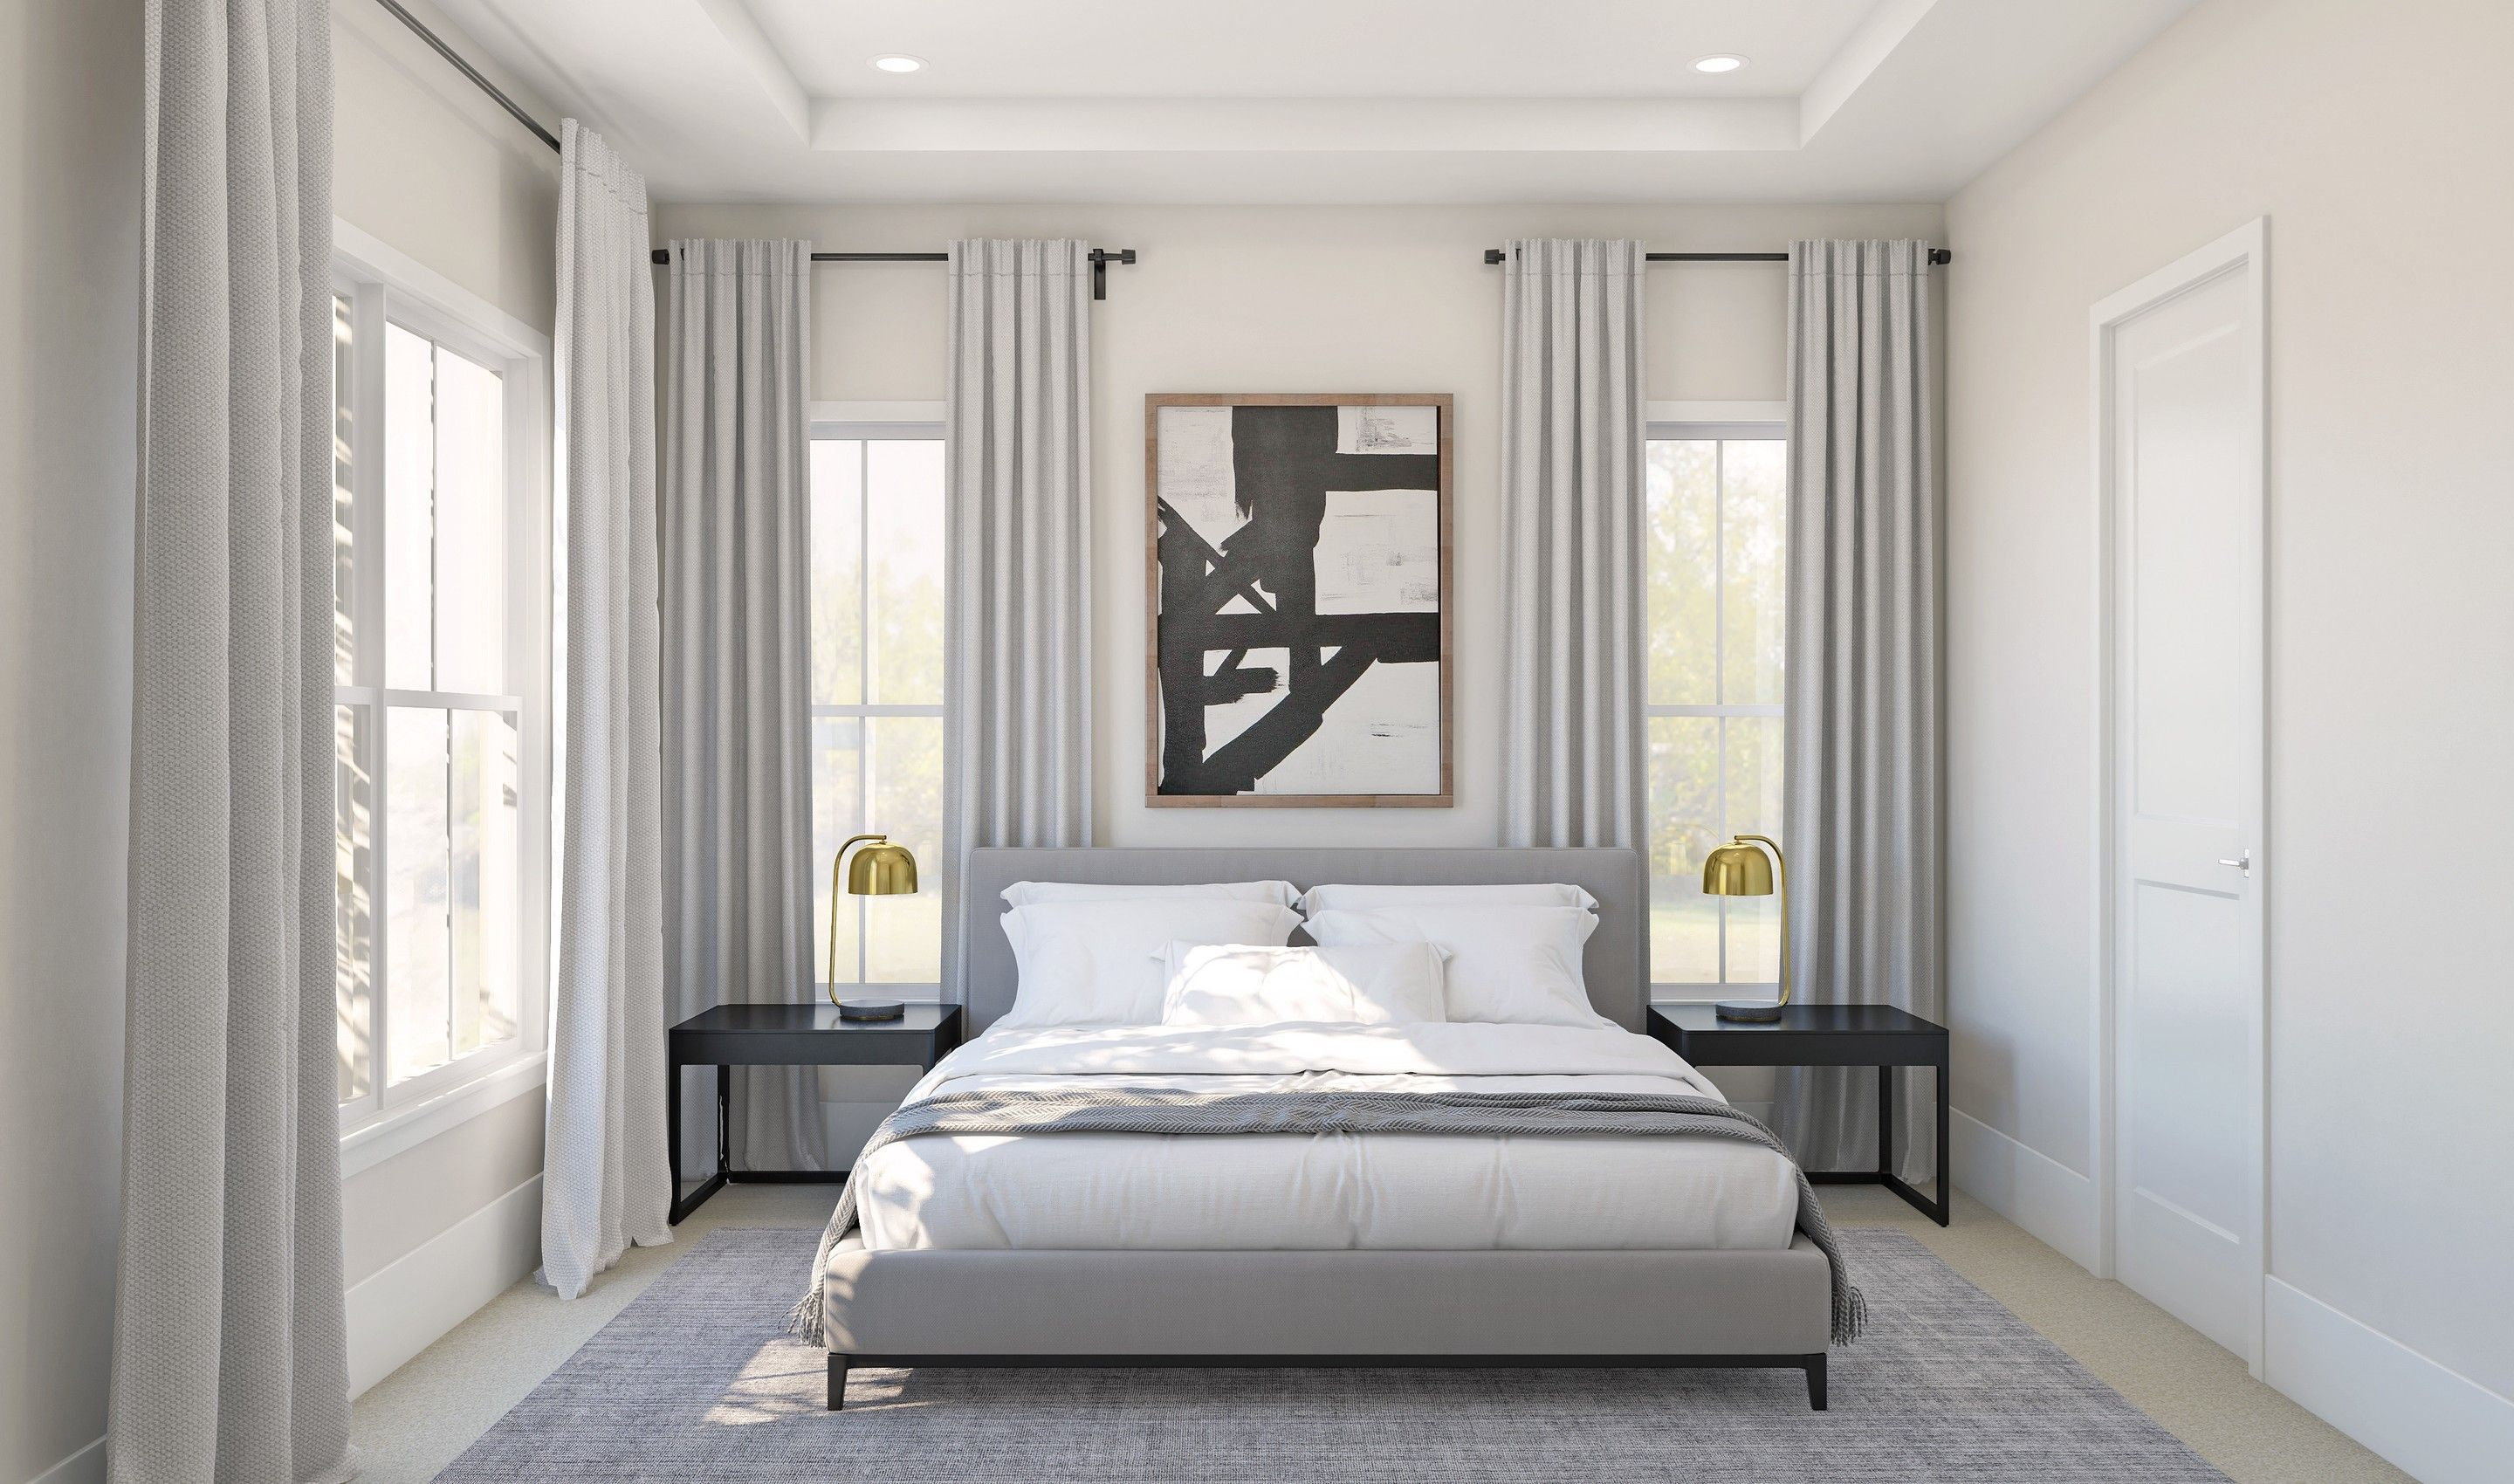 Bedroom featured in the Palmera II By K. Hovnanian's® Four Seasons in Monmouth County, NJ